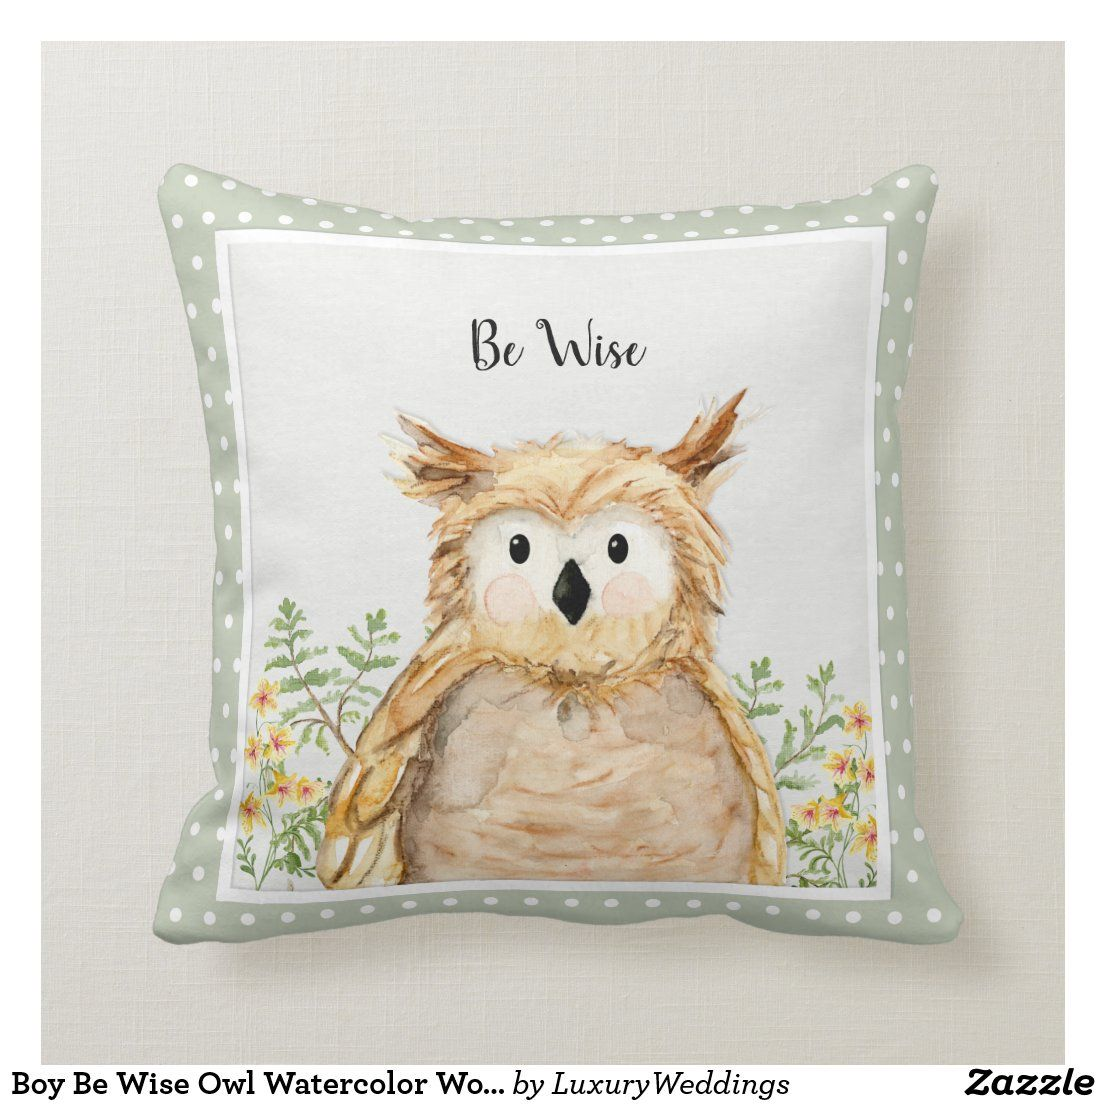 Boy Be Wise Owl Watercolor Woodland Forest Animal Throw Pillow